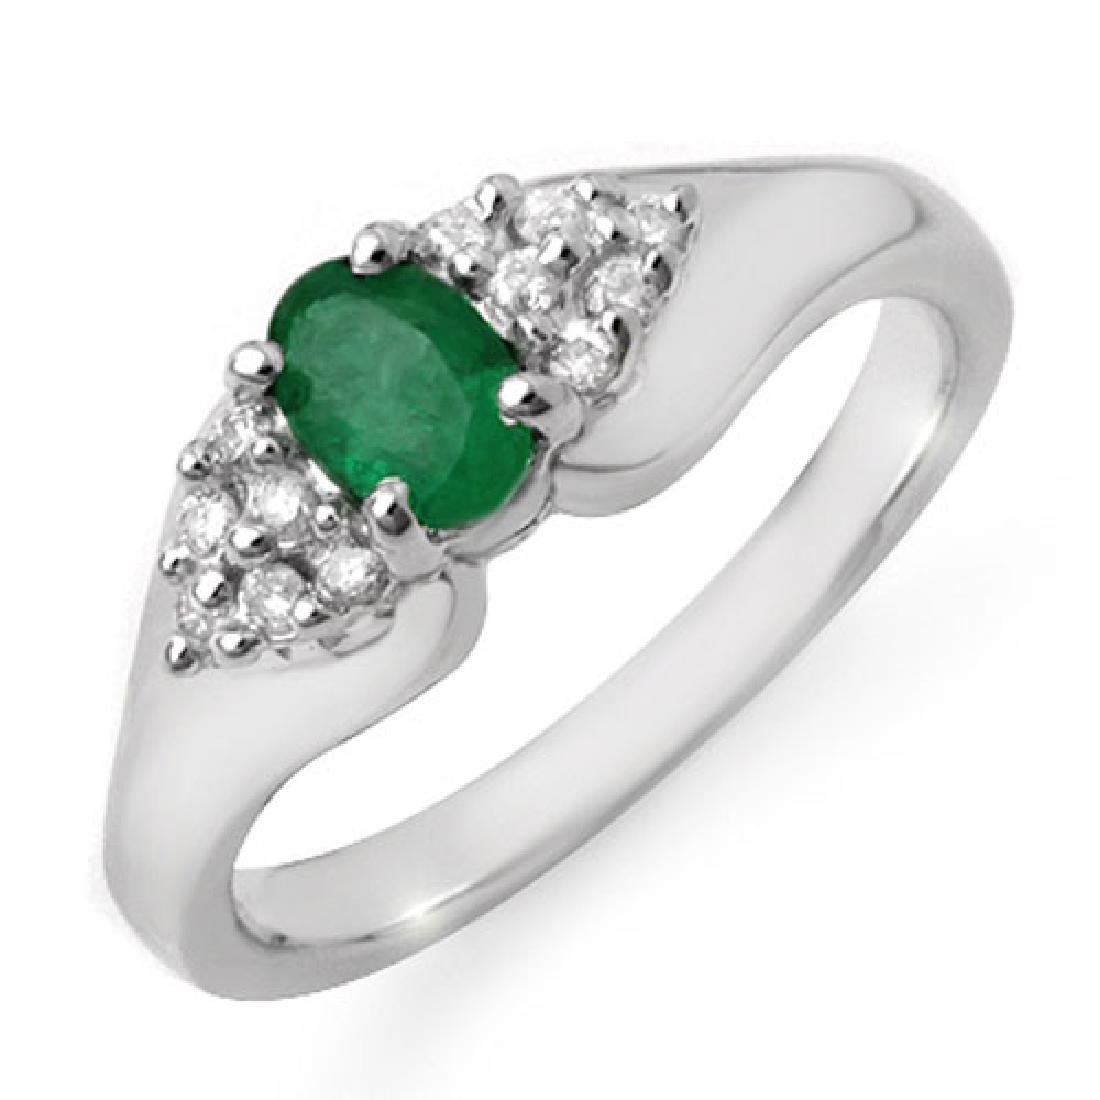 0.63 CTW Emerald & Diamond Ring 10K White Gold